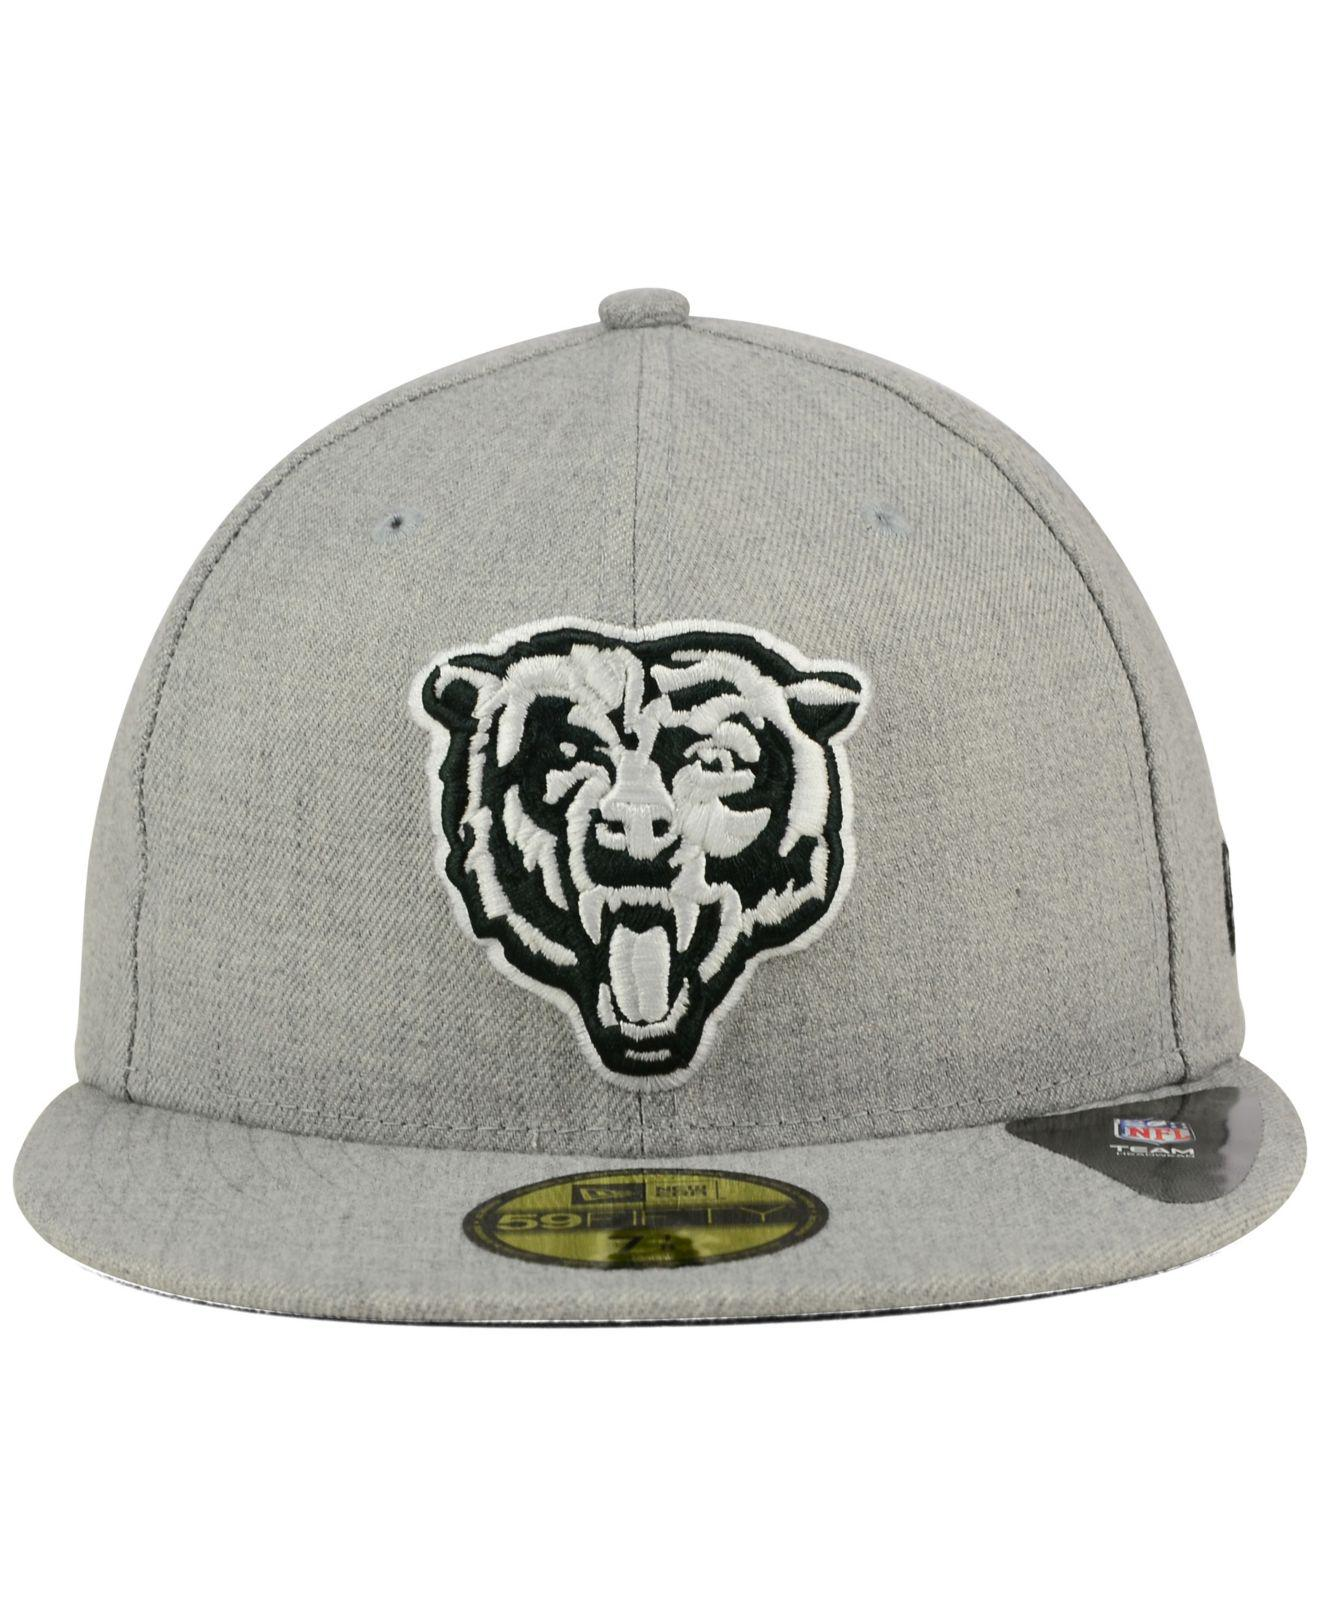 quality design 4a42c a6373 ... coupon lyst ktz chicago bears heather black white 59fifty cap in gray  for men 5e84e d9f26